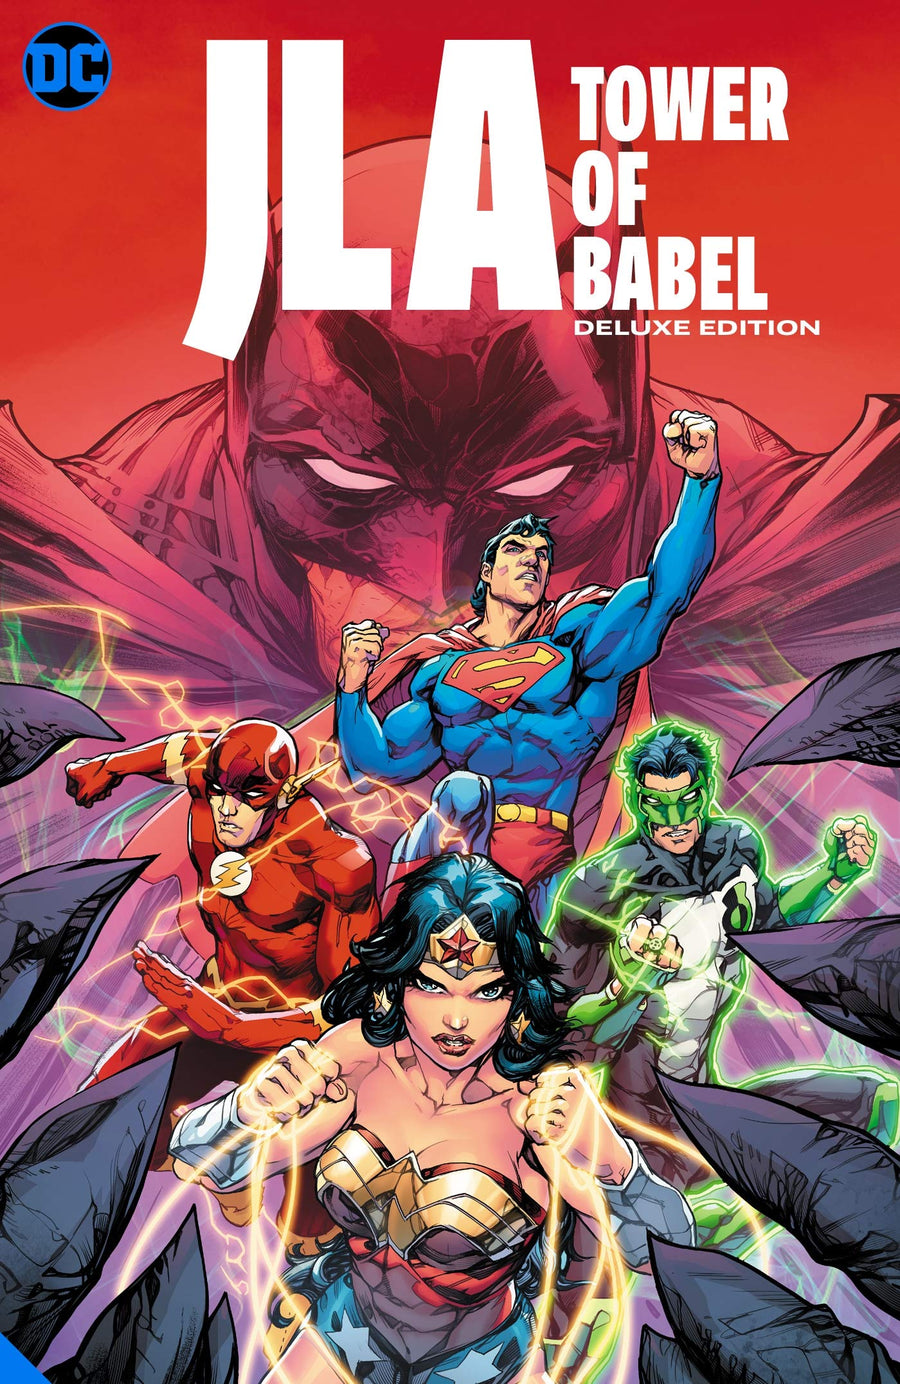 JLA The Tower Of Babel The Deluxe Edition Hardcover